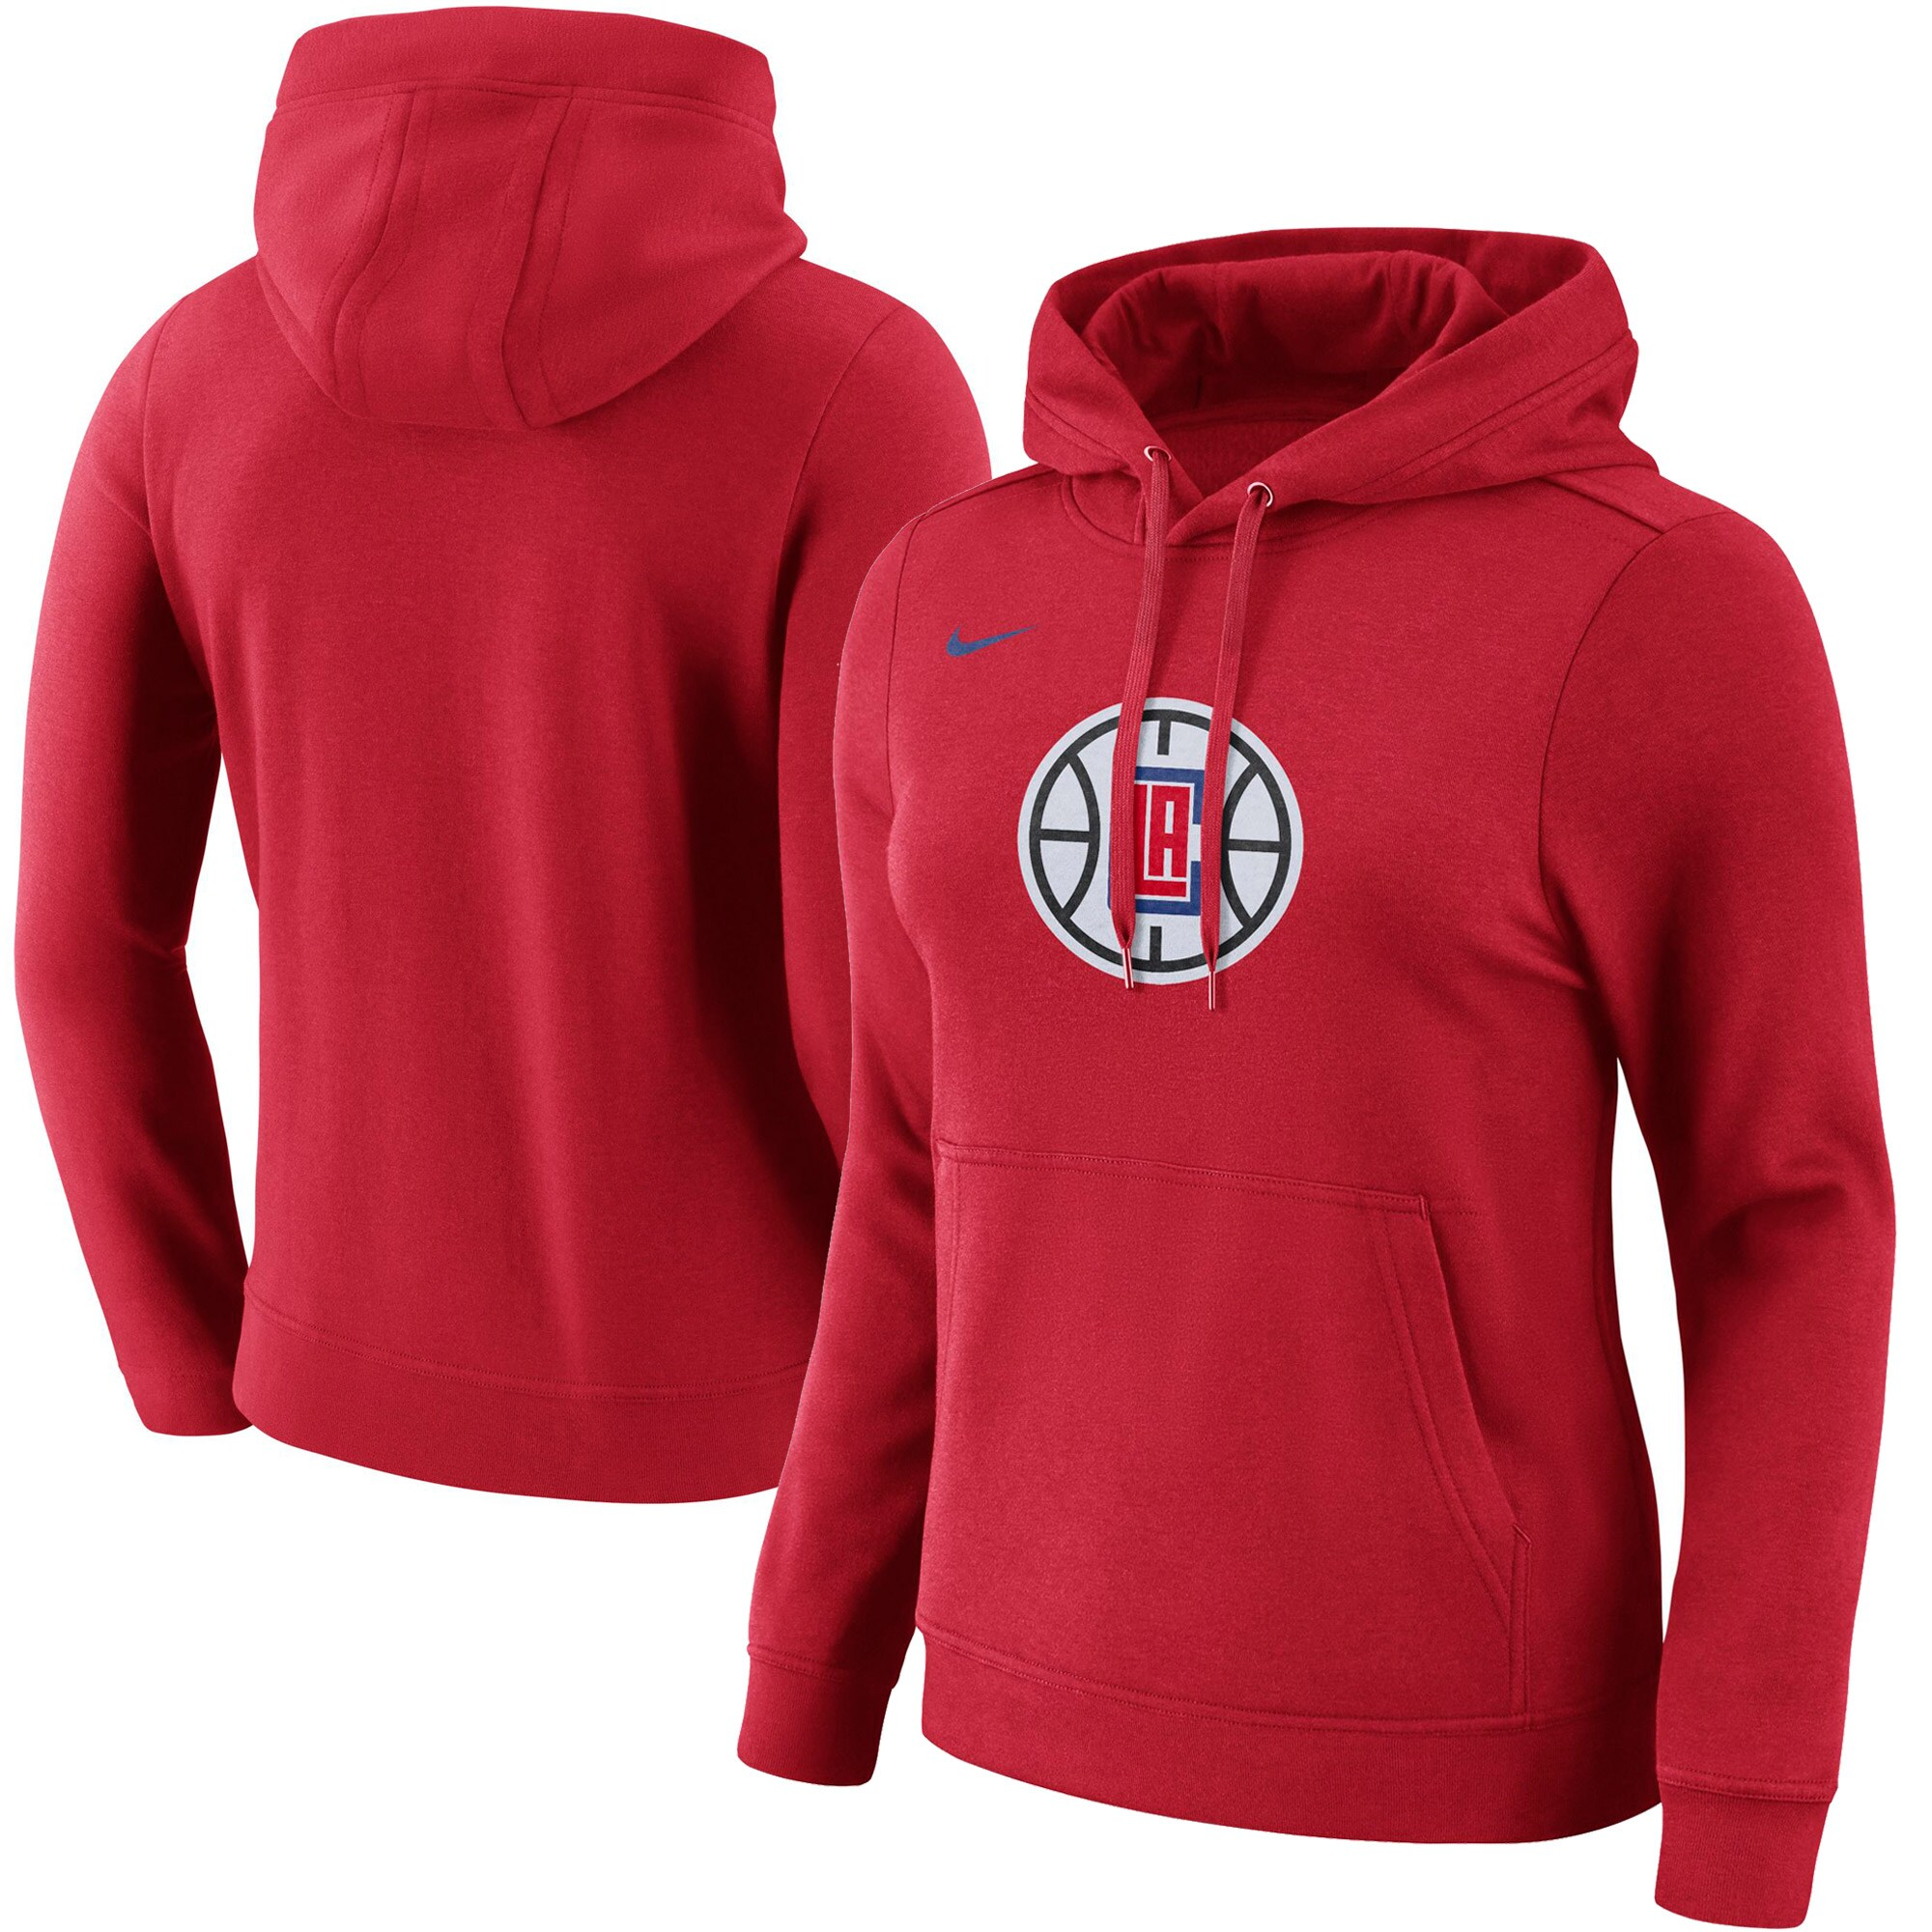 LA Clippers Nike Women's Primary Logo Pullover Hoodie - Red